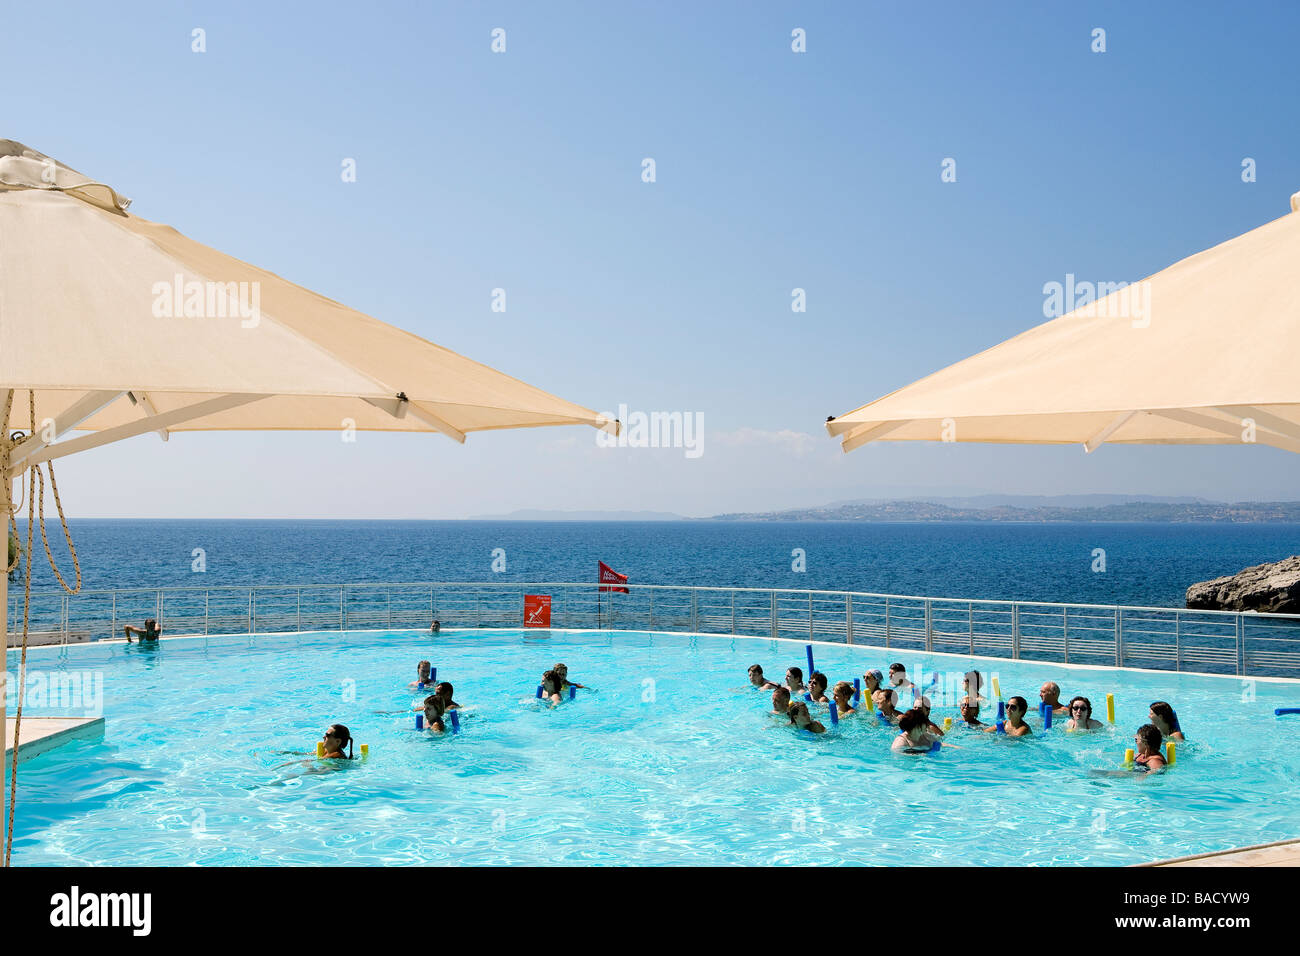 Greece Peloponnese Ermioni Lena Mary Hotel Aquagym In The Swimming Pool Stock Photo Alamy